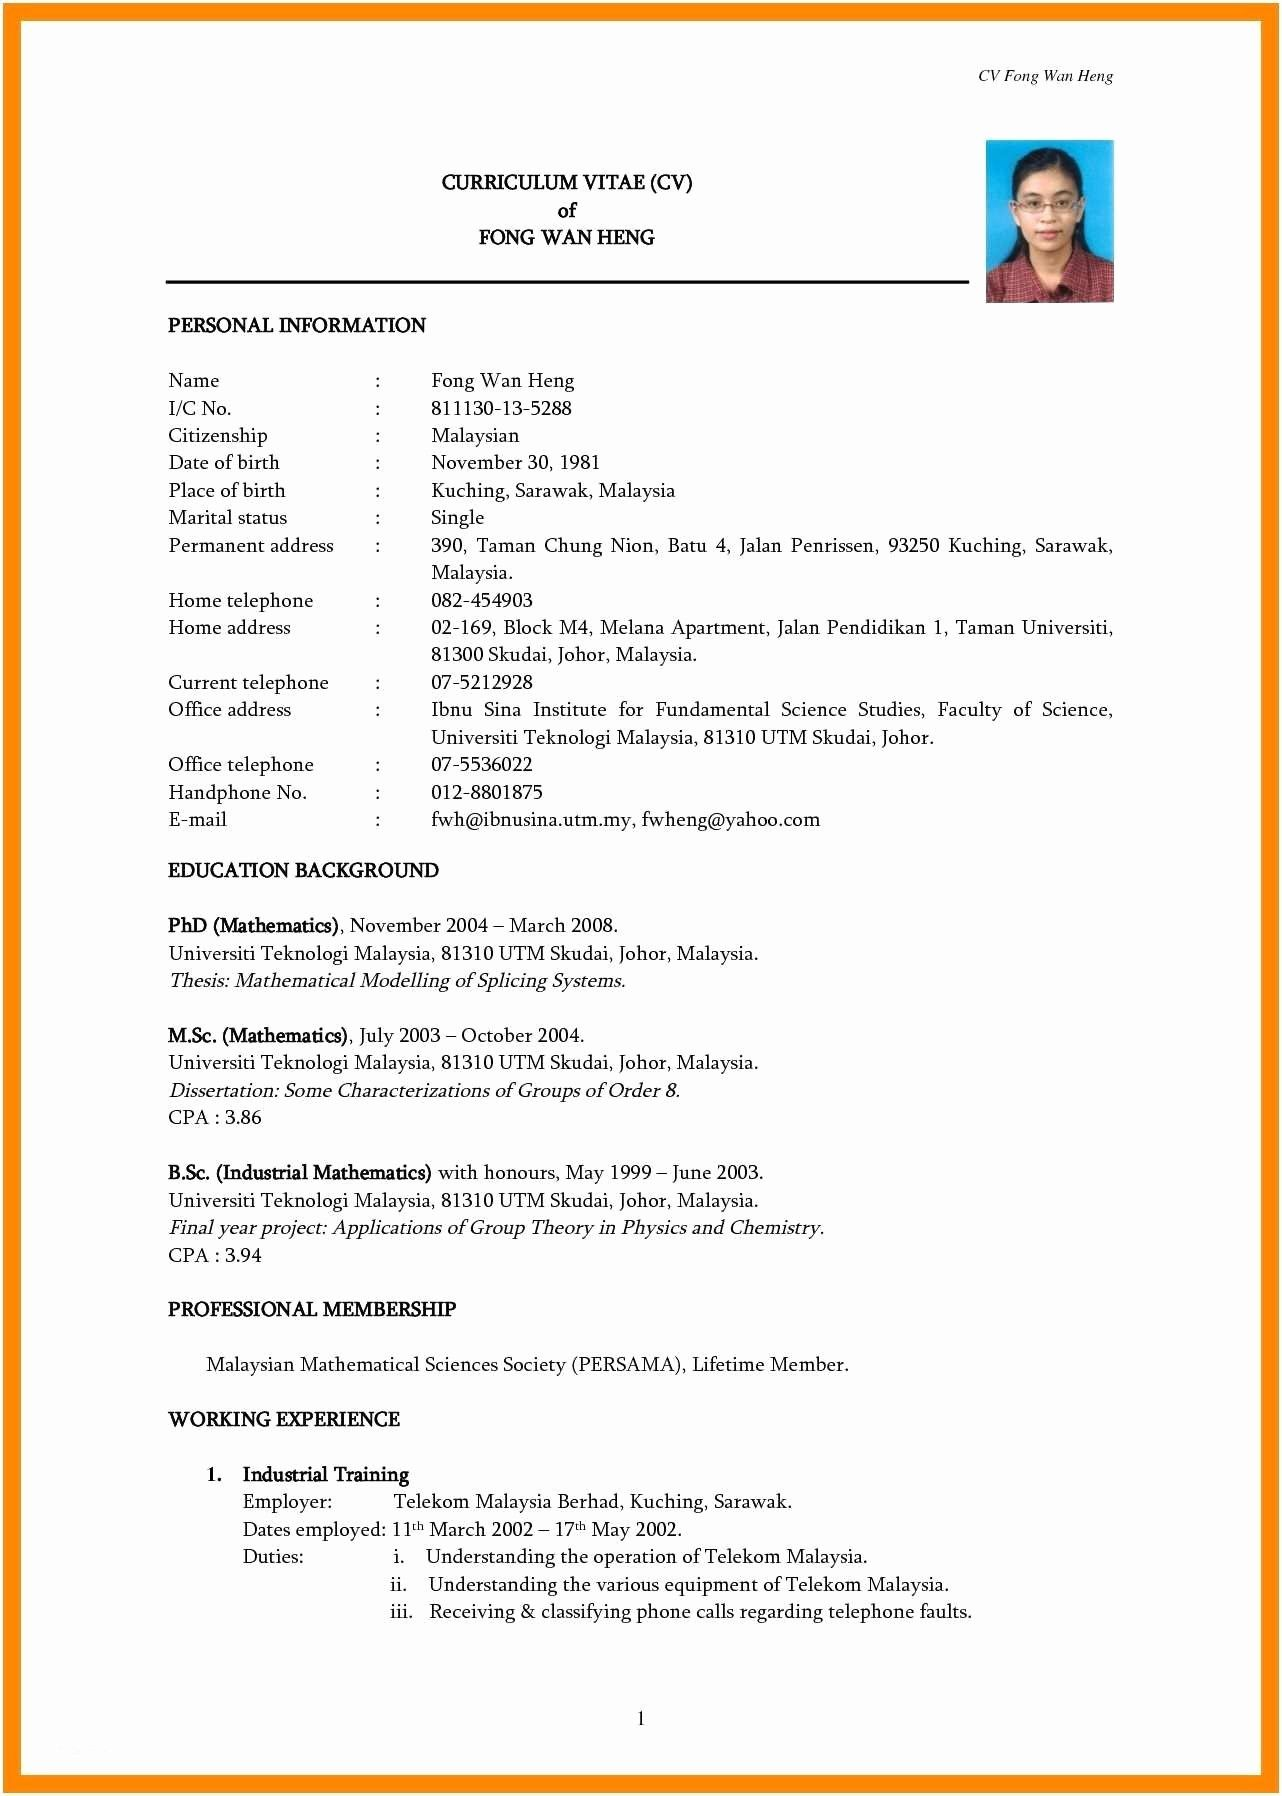 standard resume format fresh samples new sample free template simple current templates Resume Current Resume Templates 2015